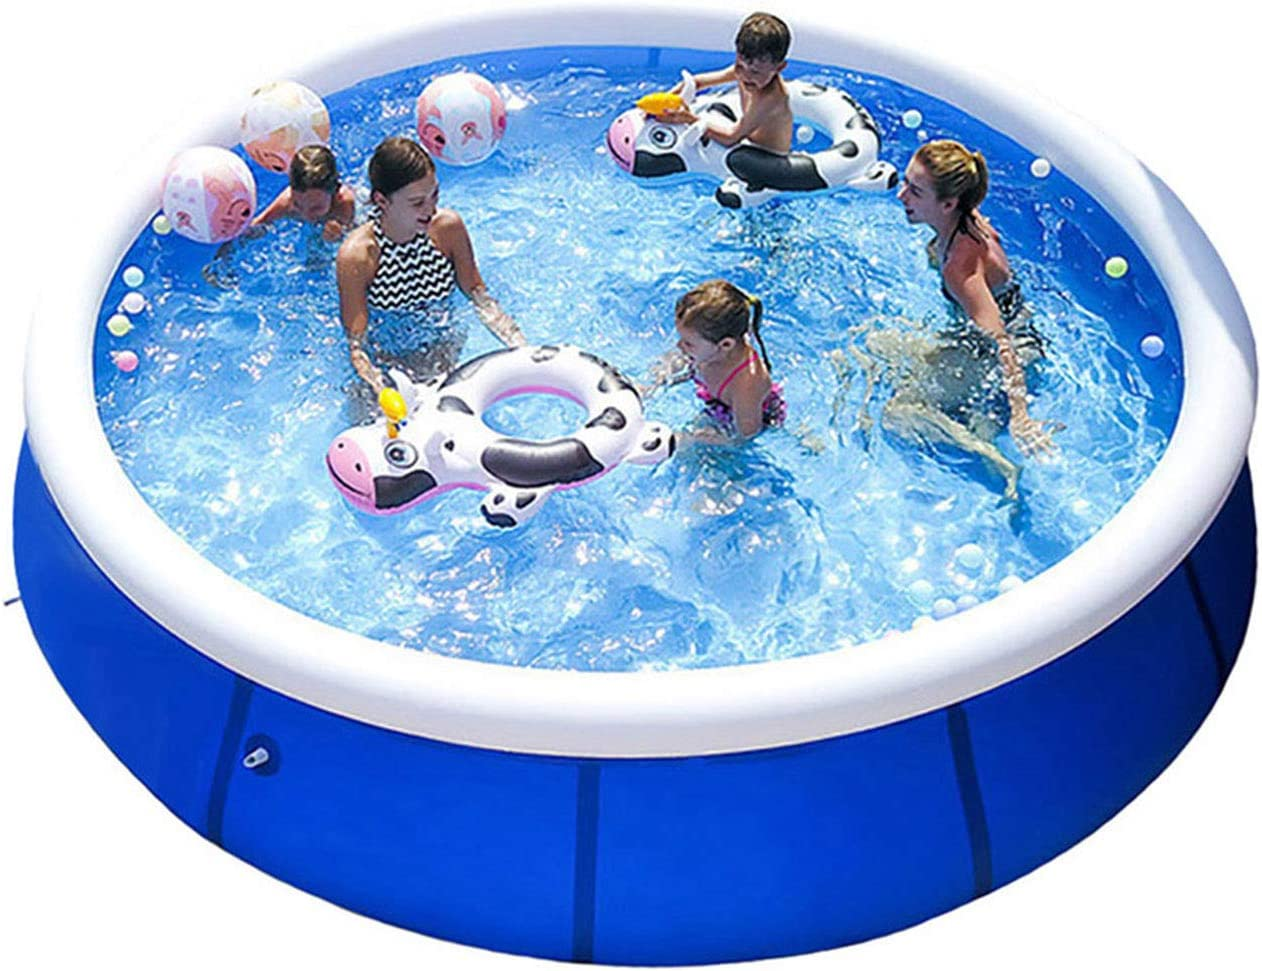 Massimiliano Incas Large Inflatable Ground Swimming Pool for a Whole Family, Summer Outdoor Pool Suitable for Adults, Kids, Fun Water Pool Party for Garden, Backyard